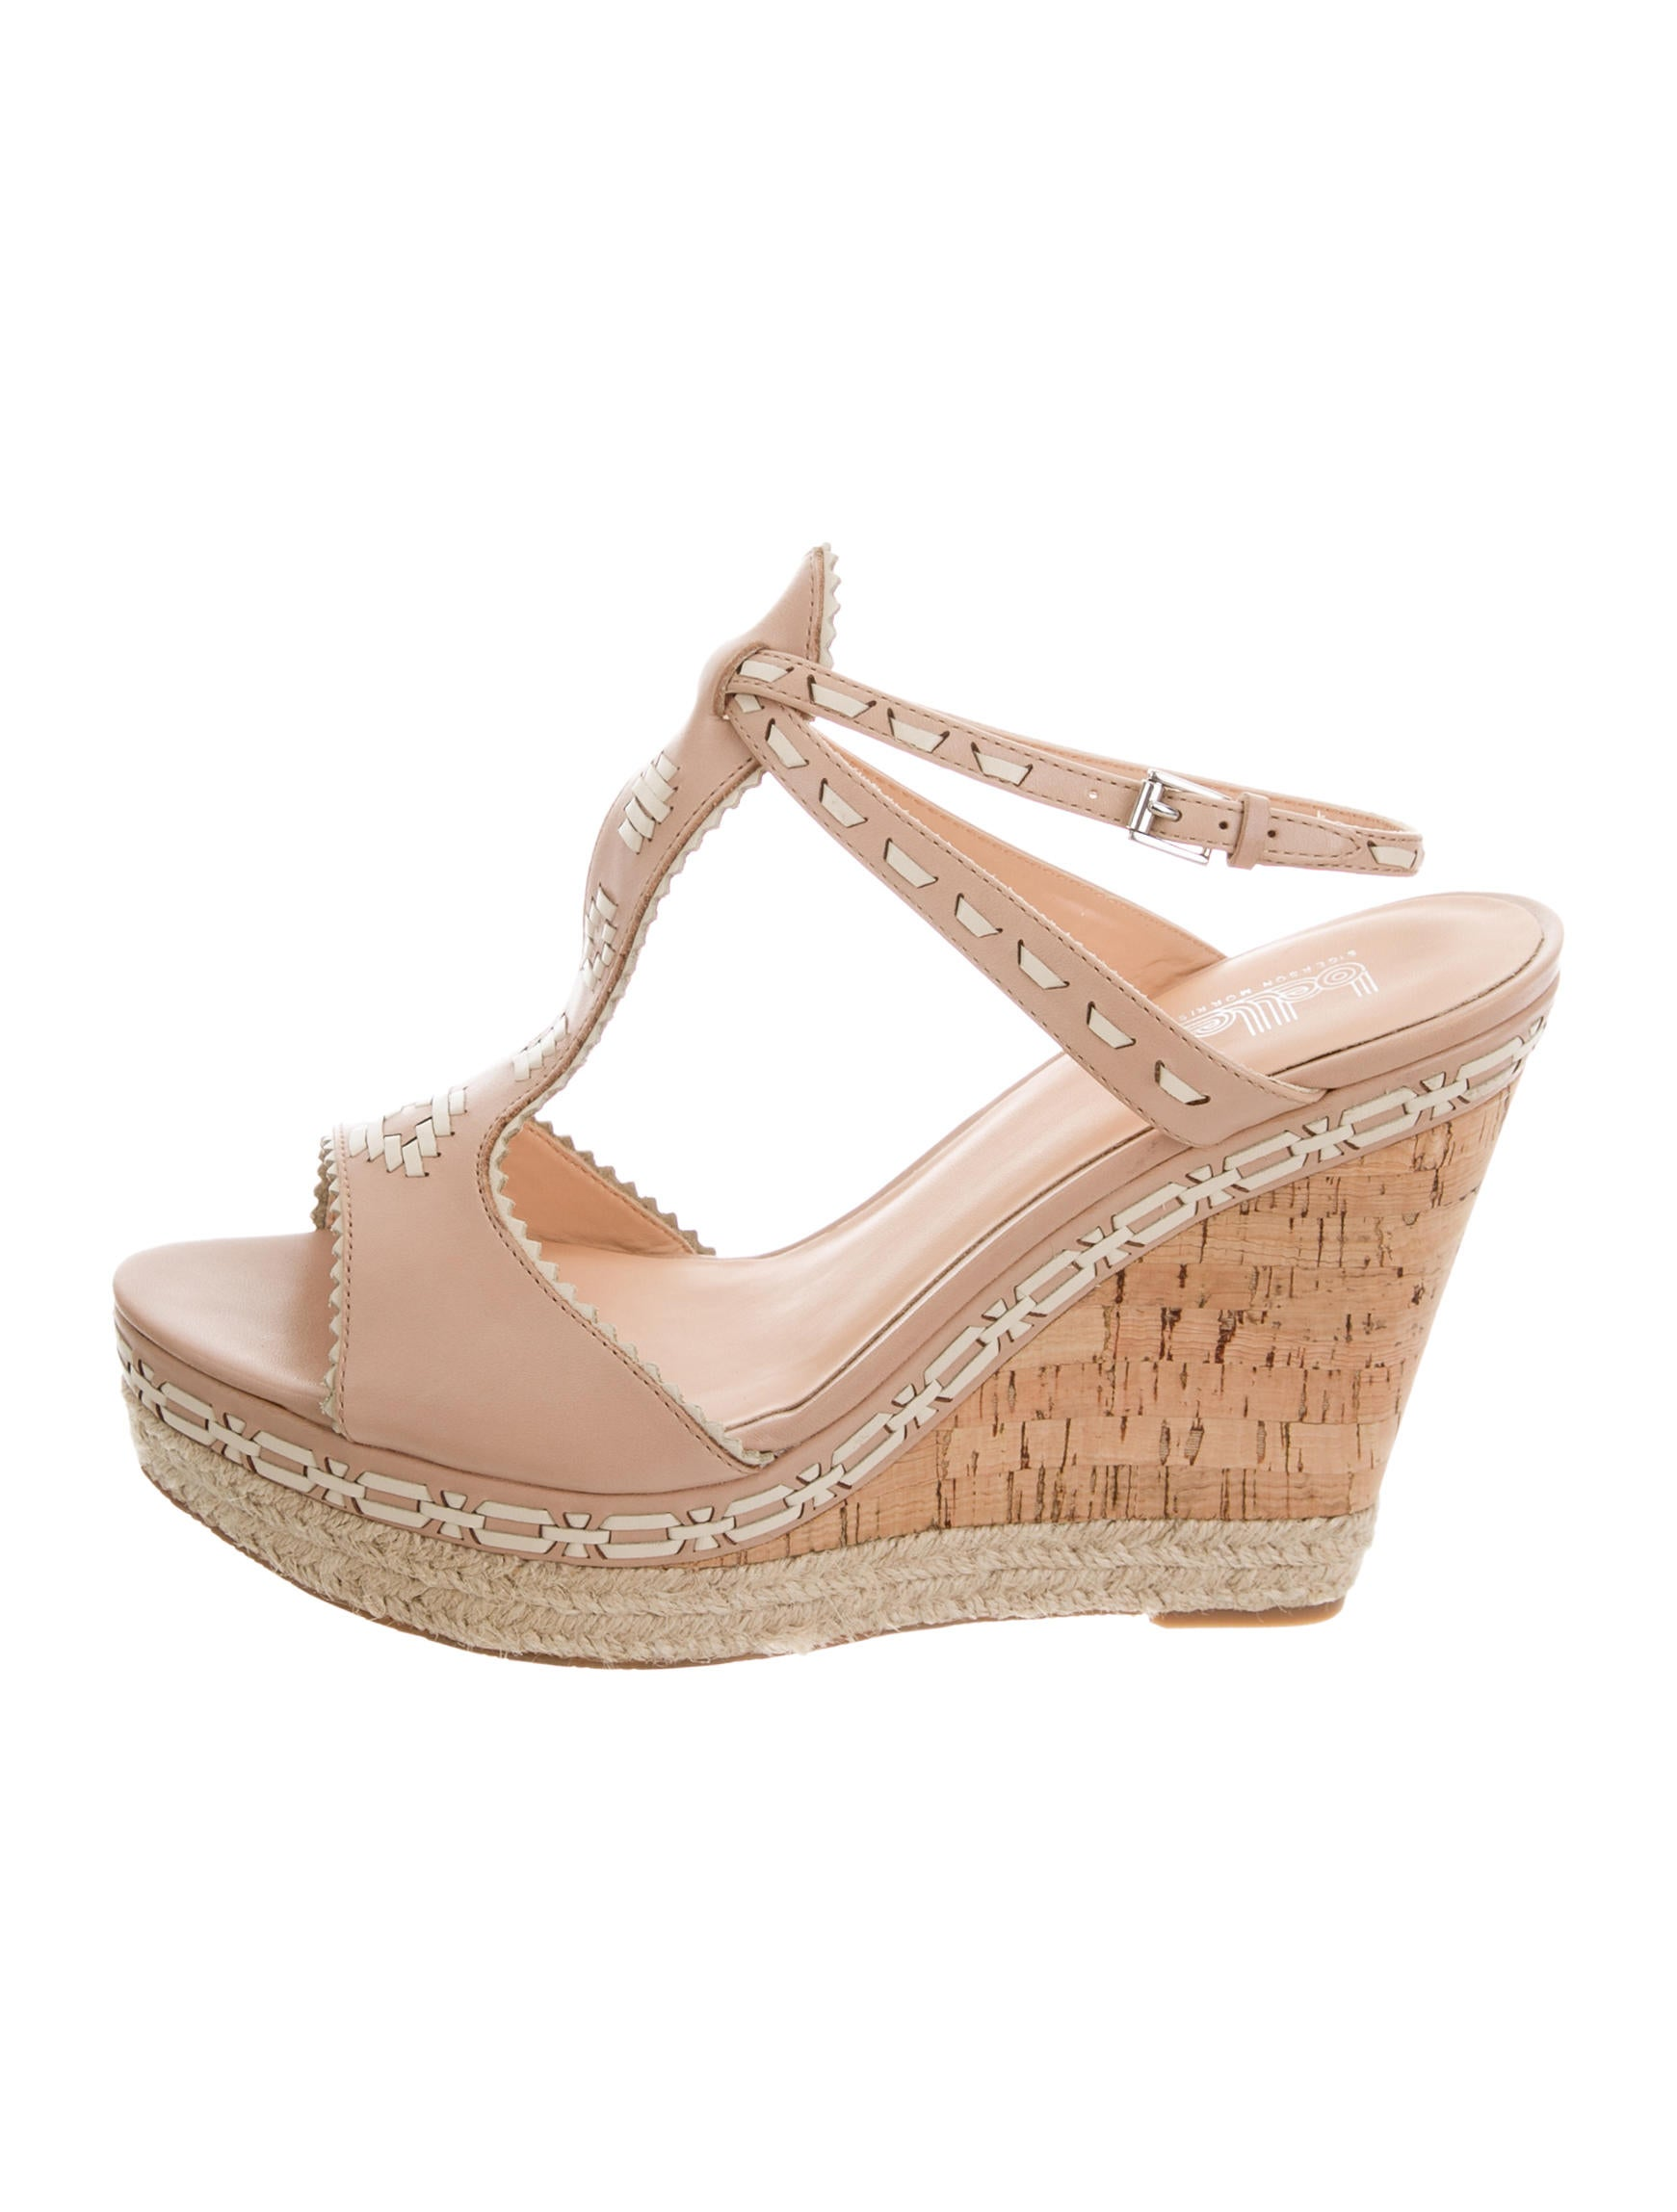 Belle by Sigerson Morrison Perforated T-Strap Wedges w/ Tags countdown package online cheap 100% authentic sale Cheapest cheap price wholesale cheap sale really 1Ixhxt0